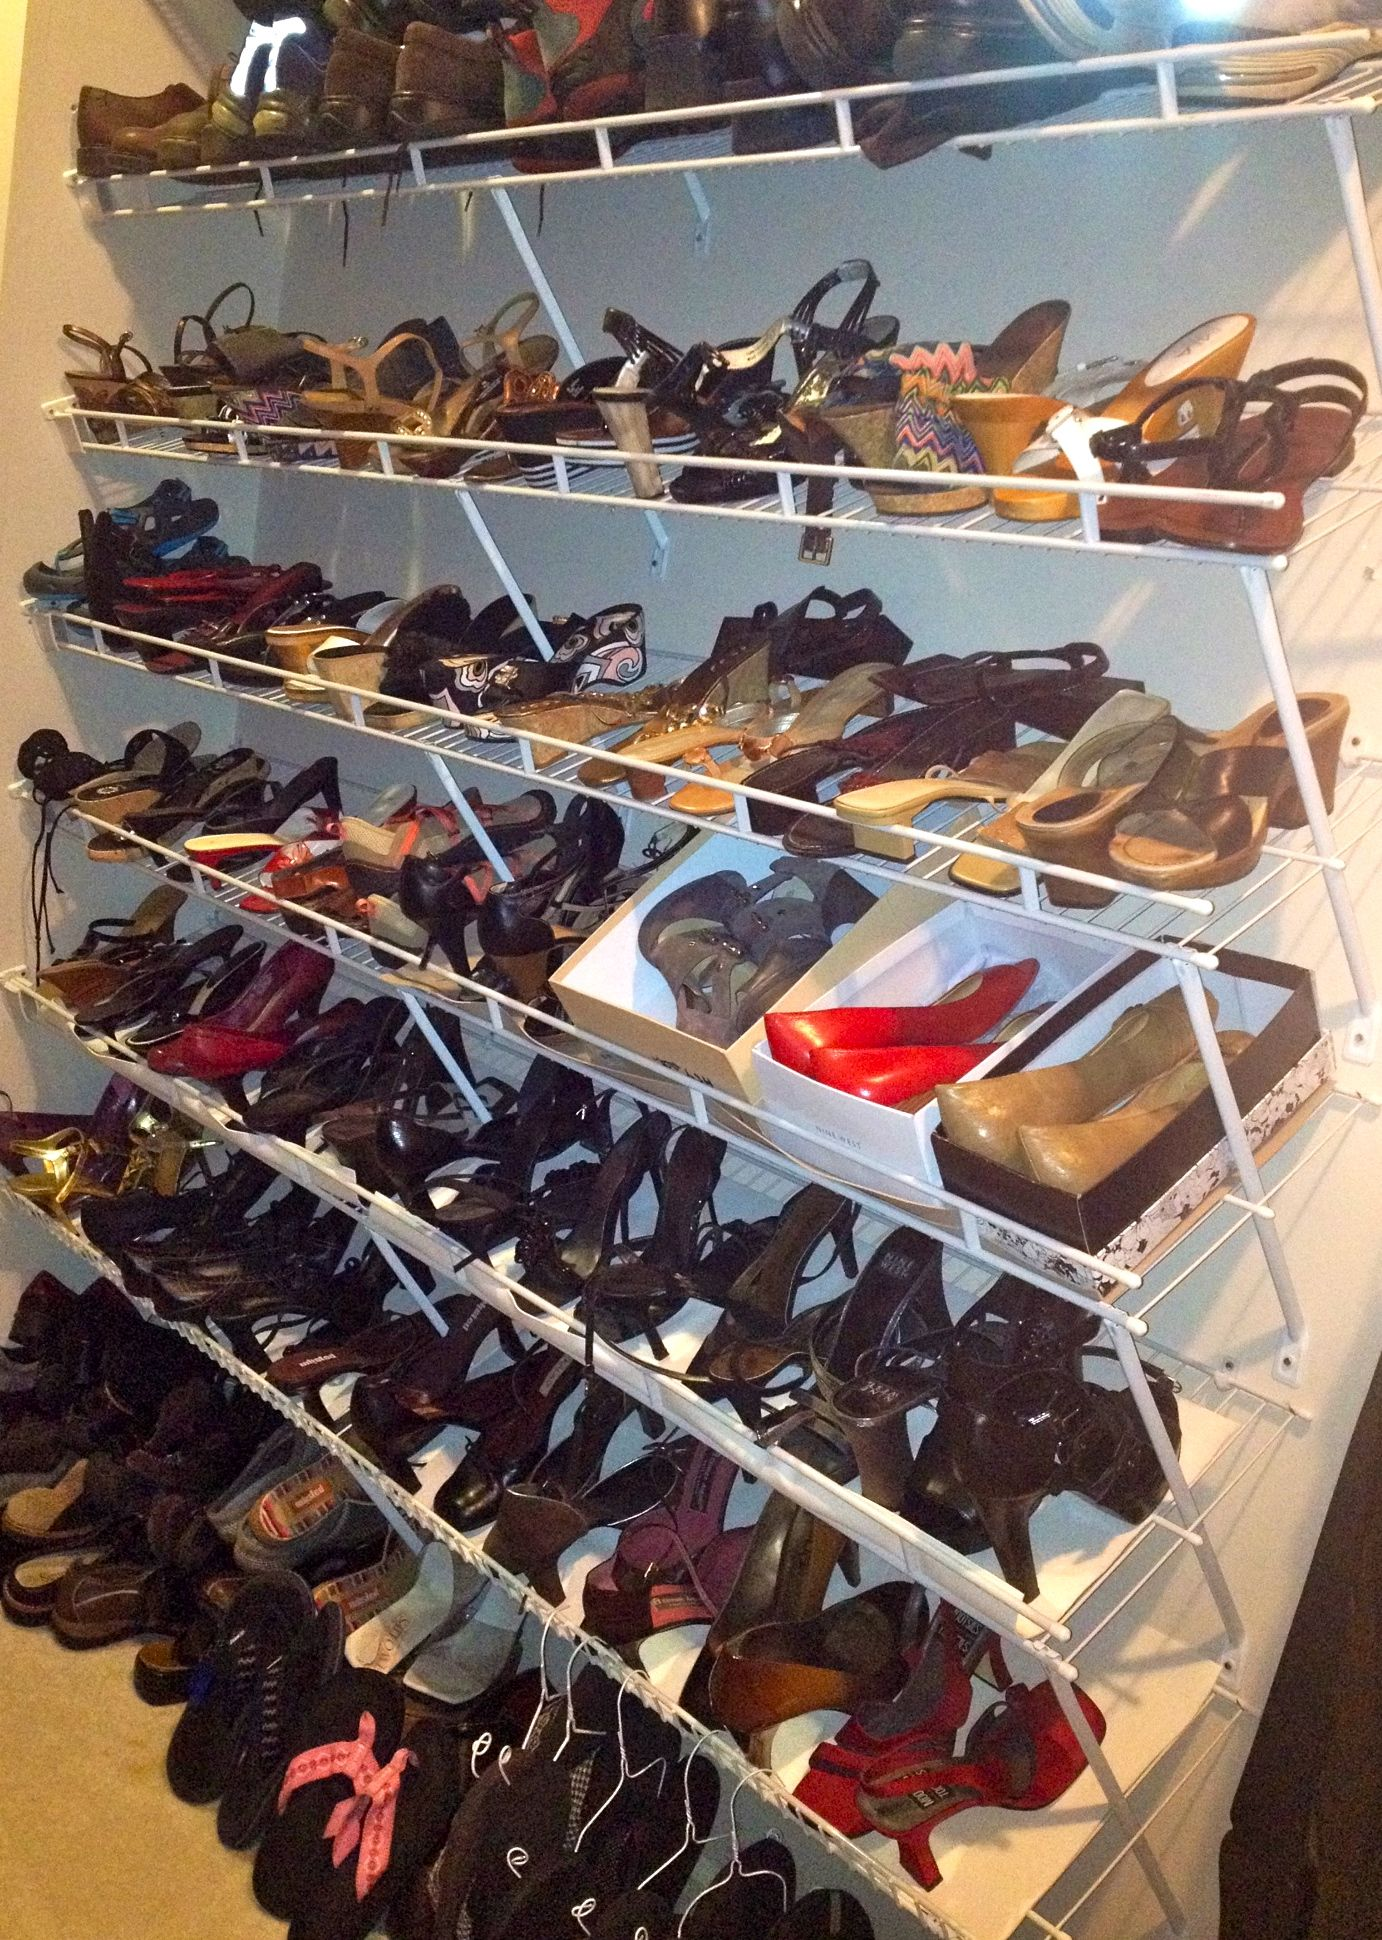 Closet Shoe Organization The Hubs Replaced A Wall Of Generic Wire Racks For Hanging Clothes With Multiple Rows Shelving Shoes